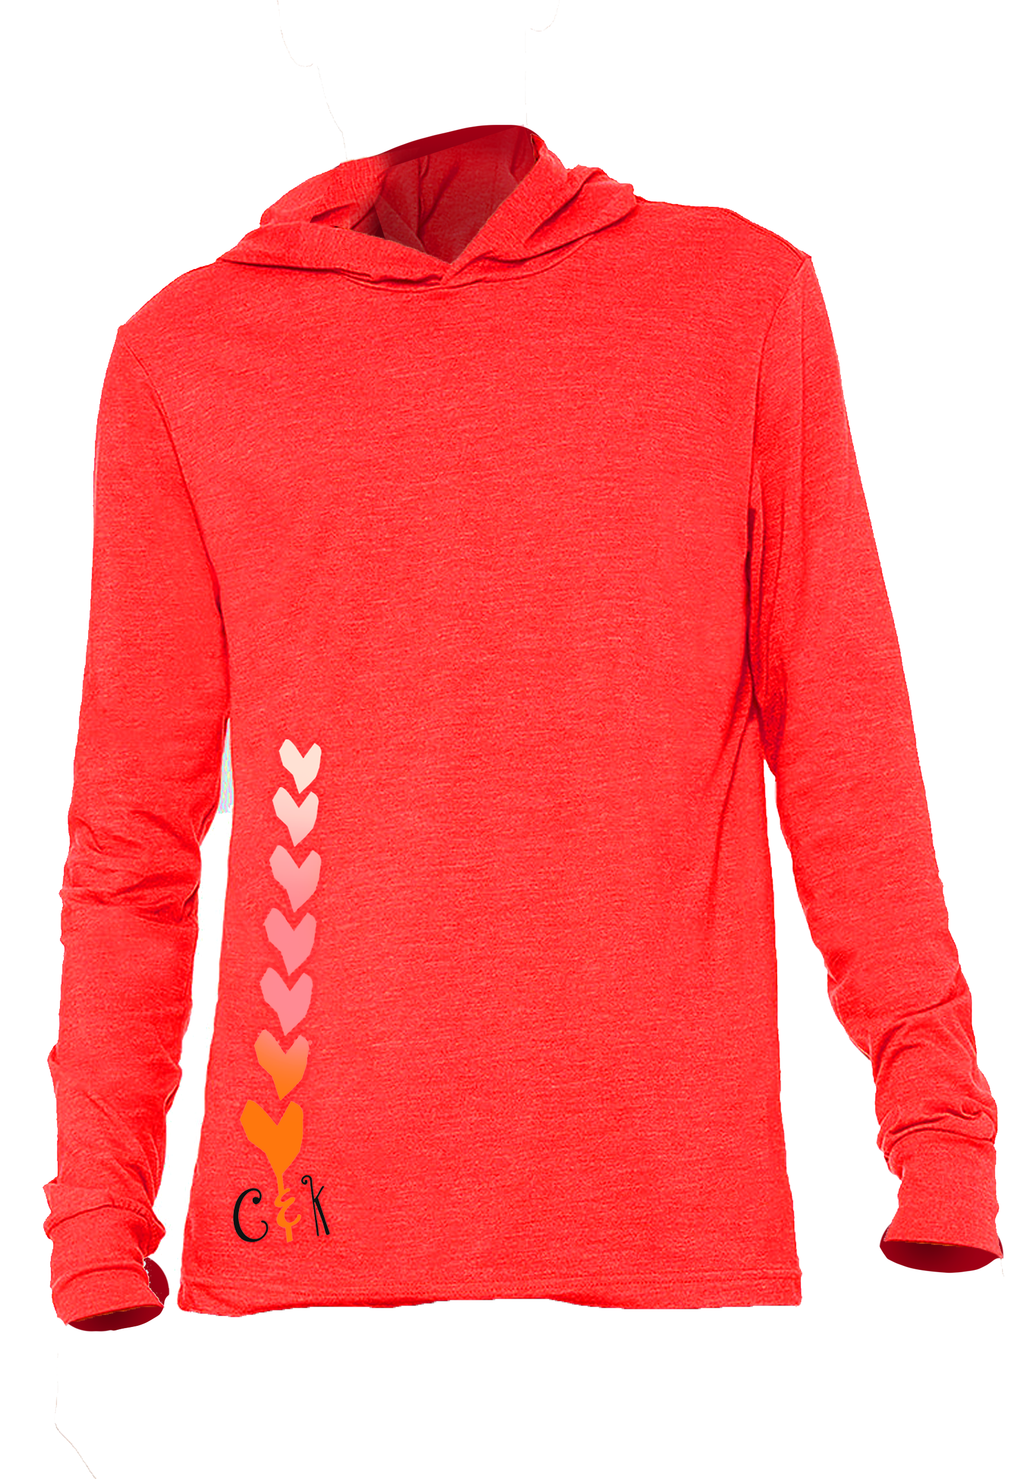 7 OF HEARTS - LIGHT WEIGHT HOODIE